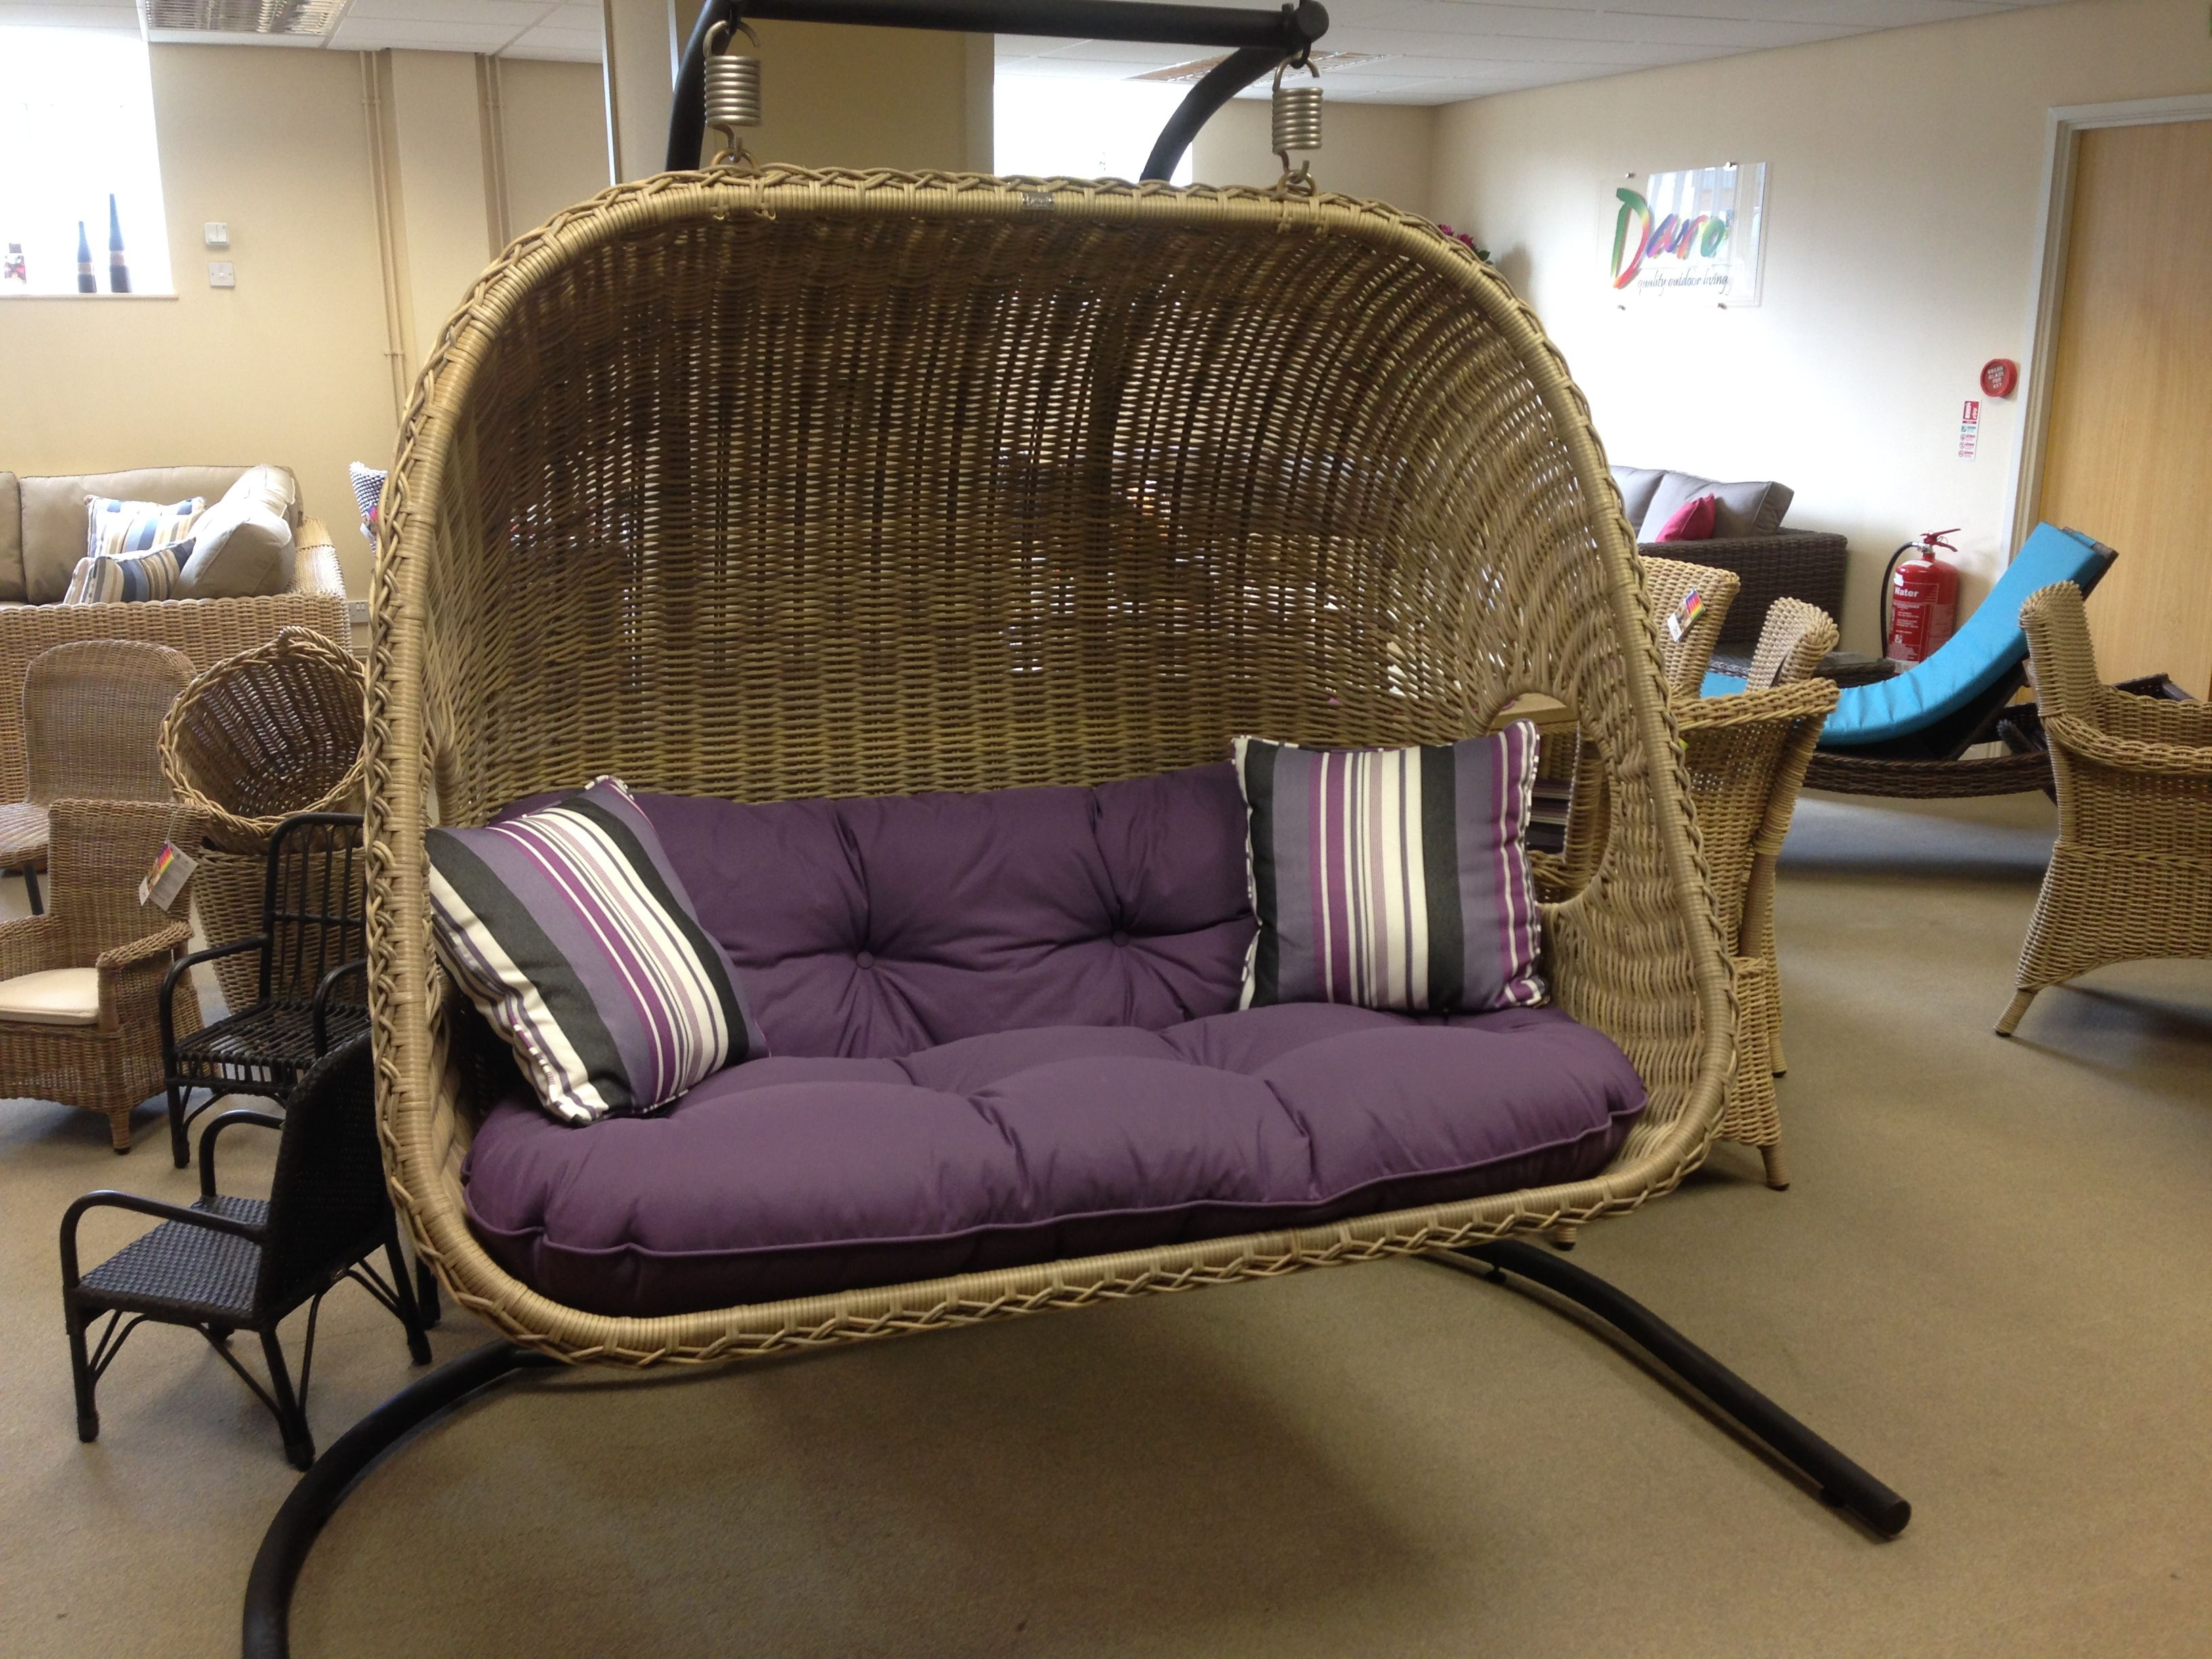 Double Hanging Chair Outdoor Or Indoor Luxury All Weather Rattan By